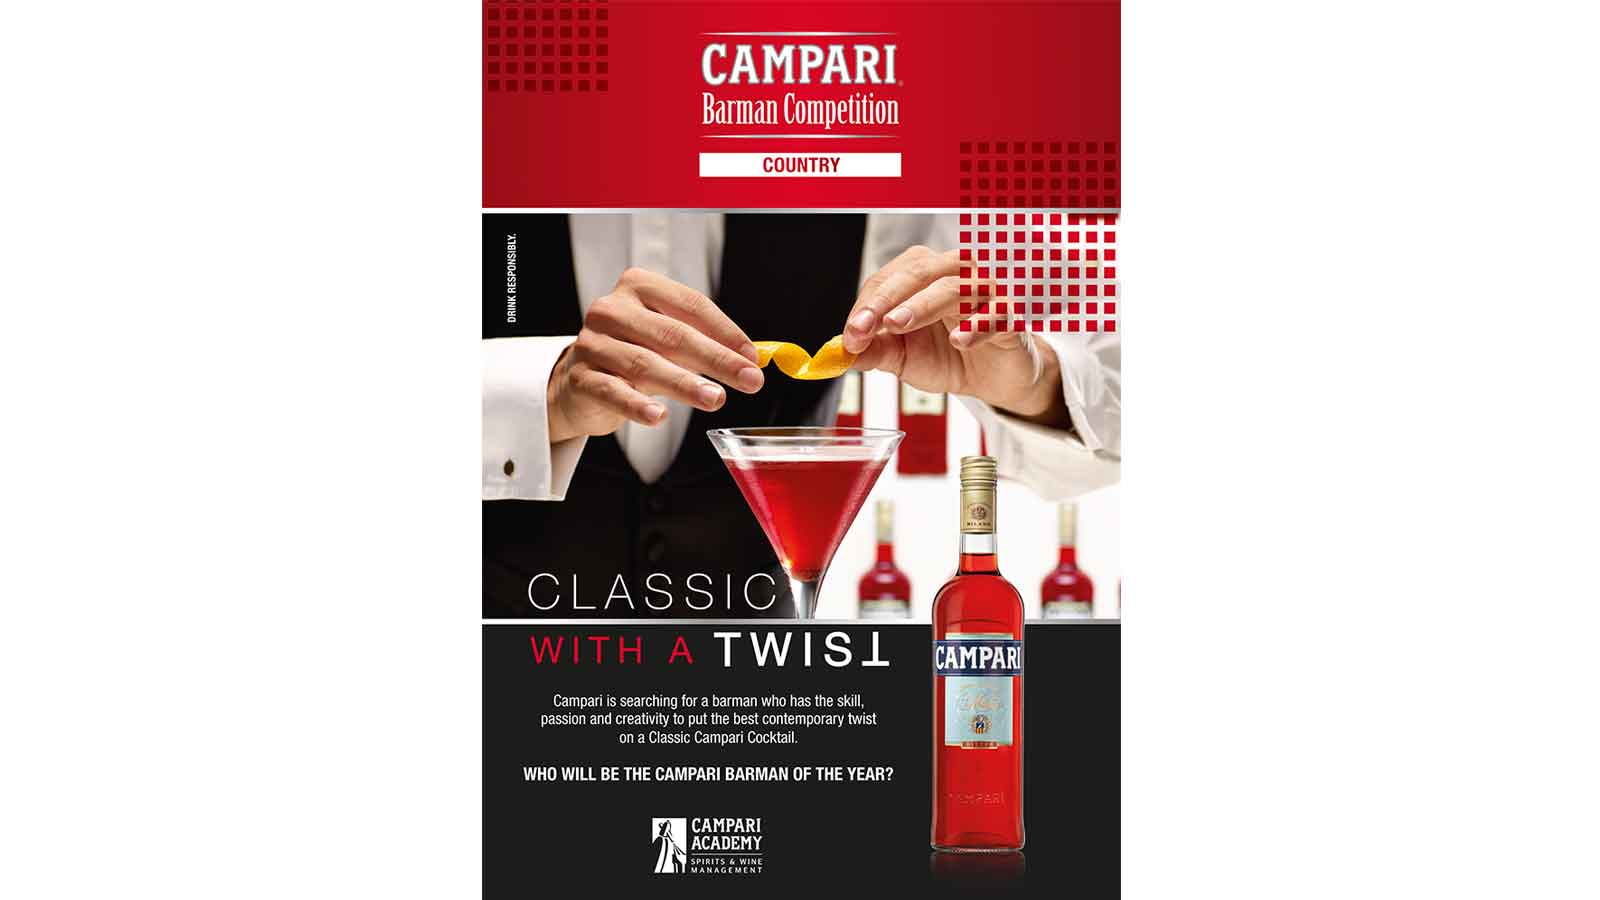 Campari is looking for a barman who can put the best contemporary twist on a classic